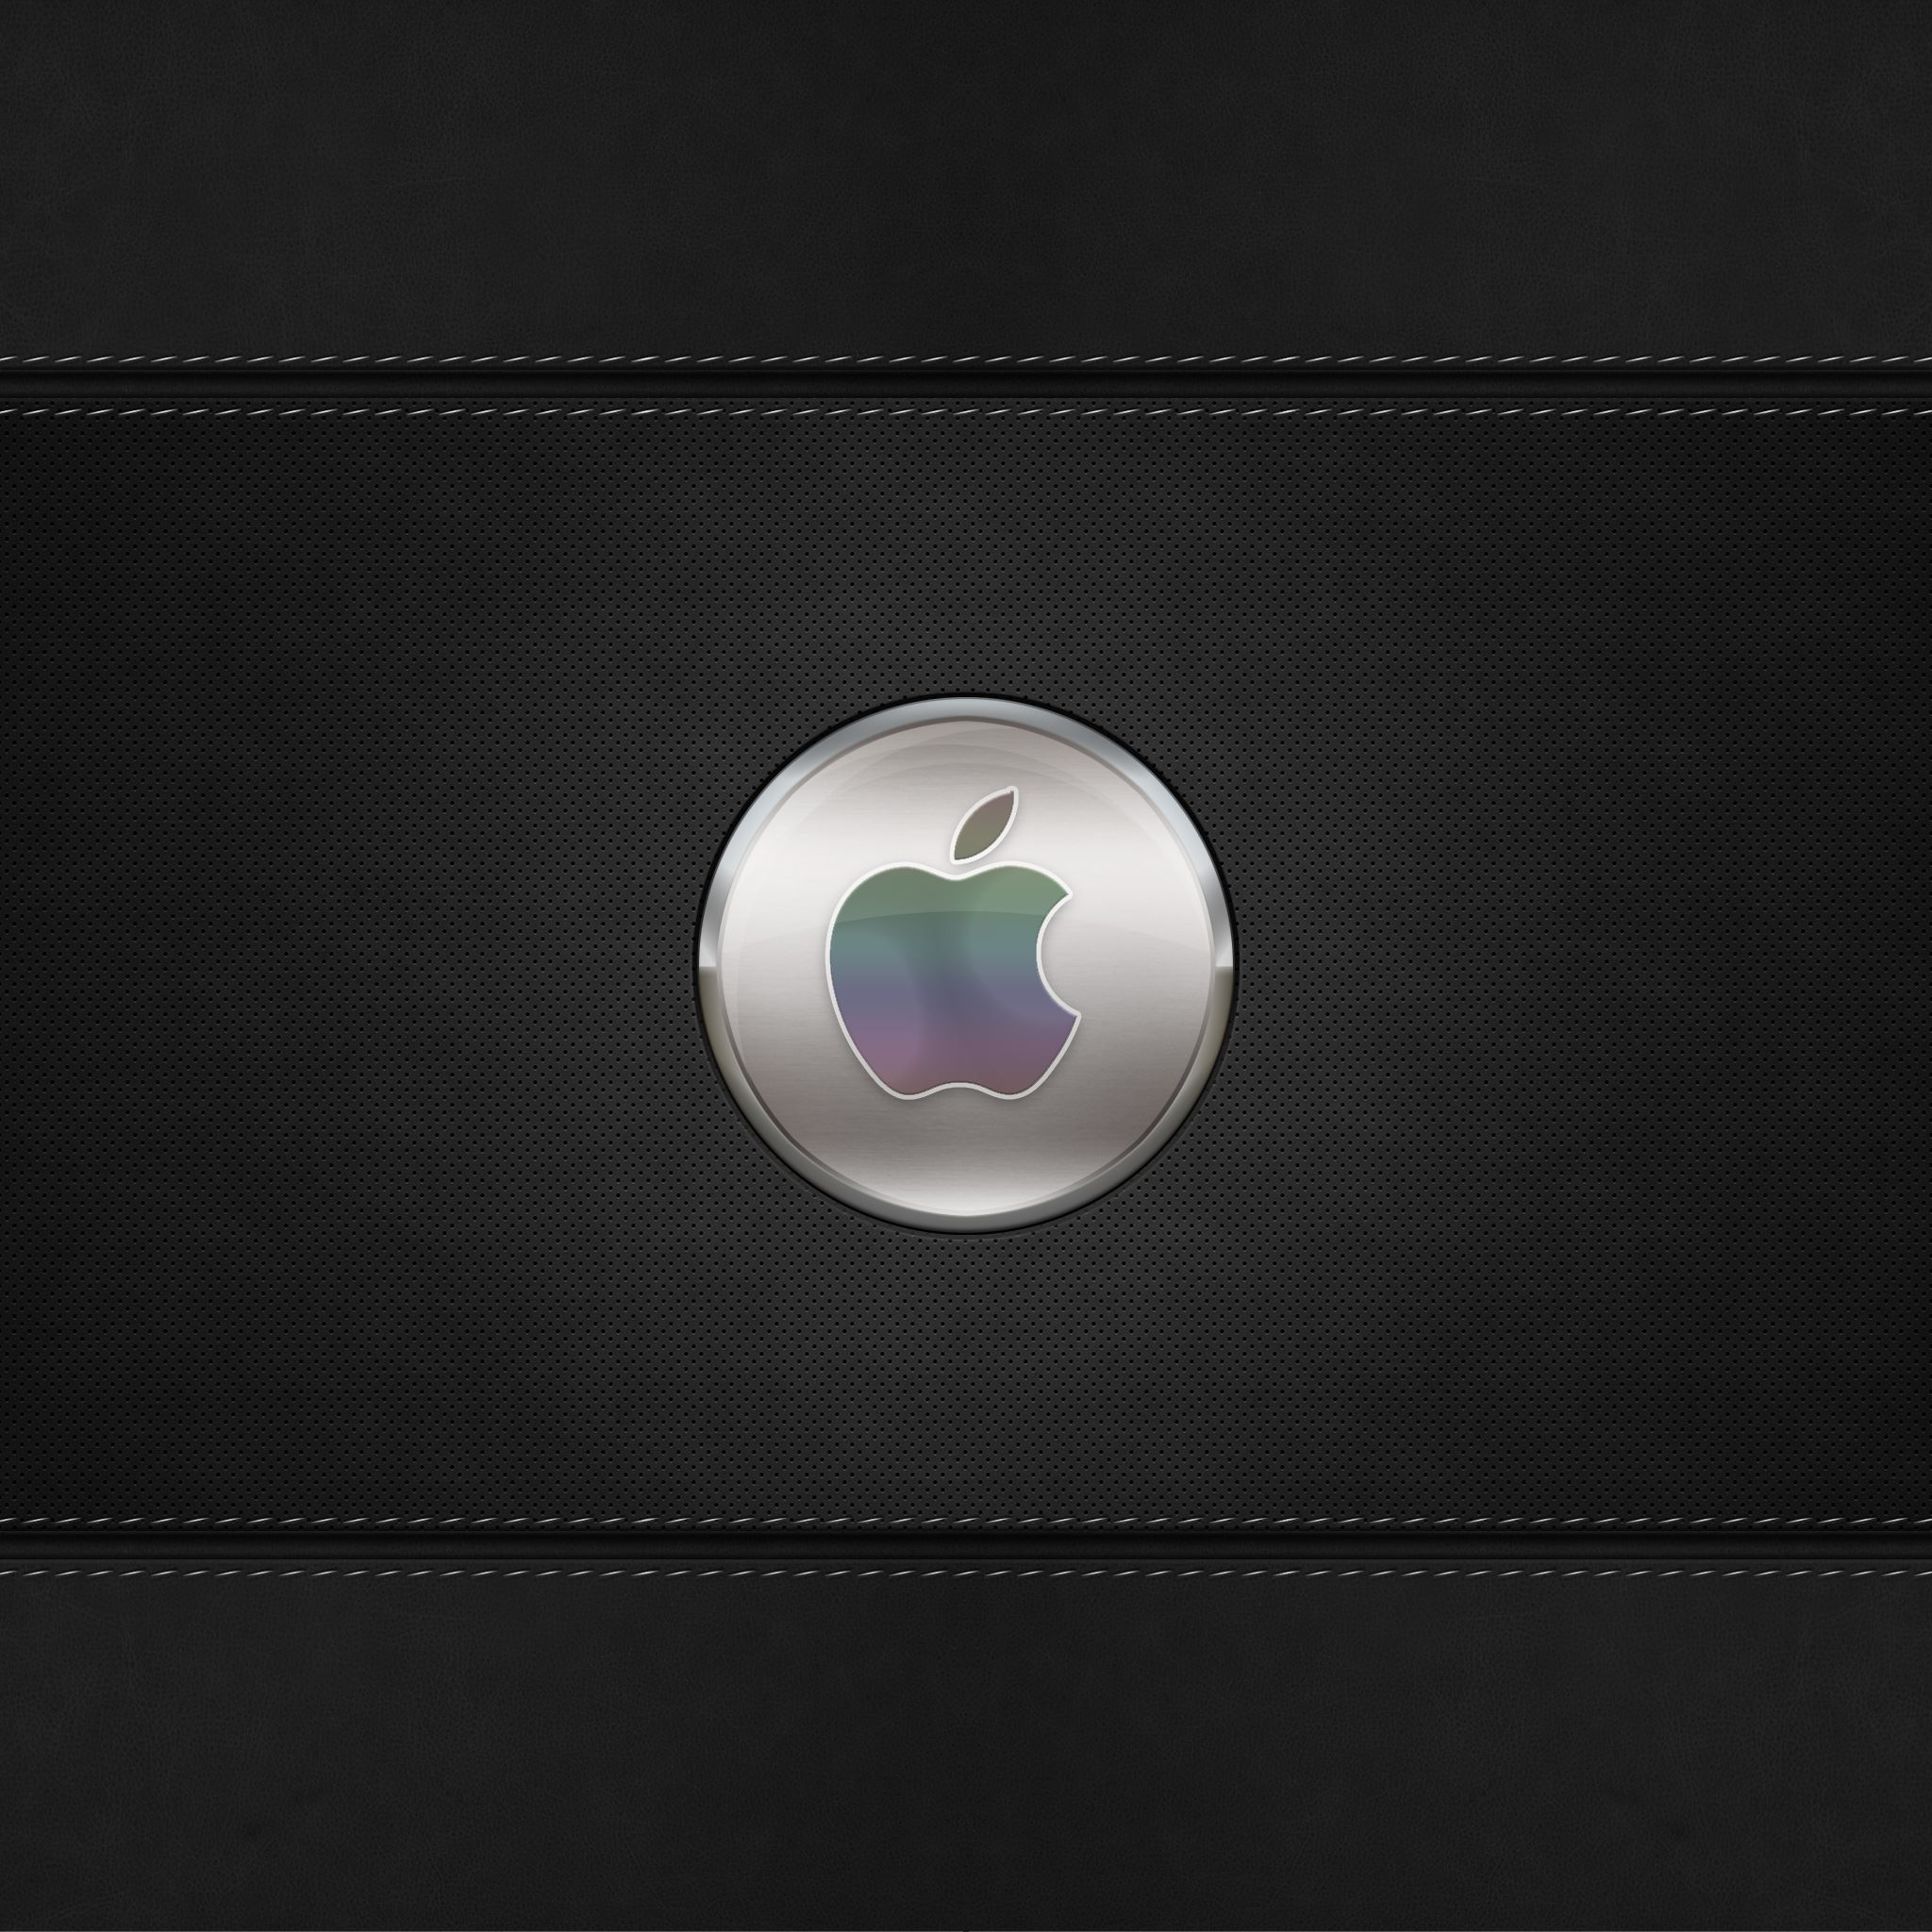 Metal Orb iPad Air wallpaper